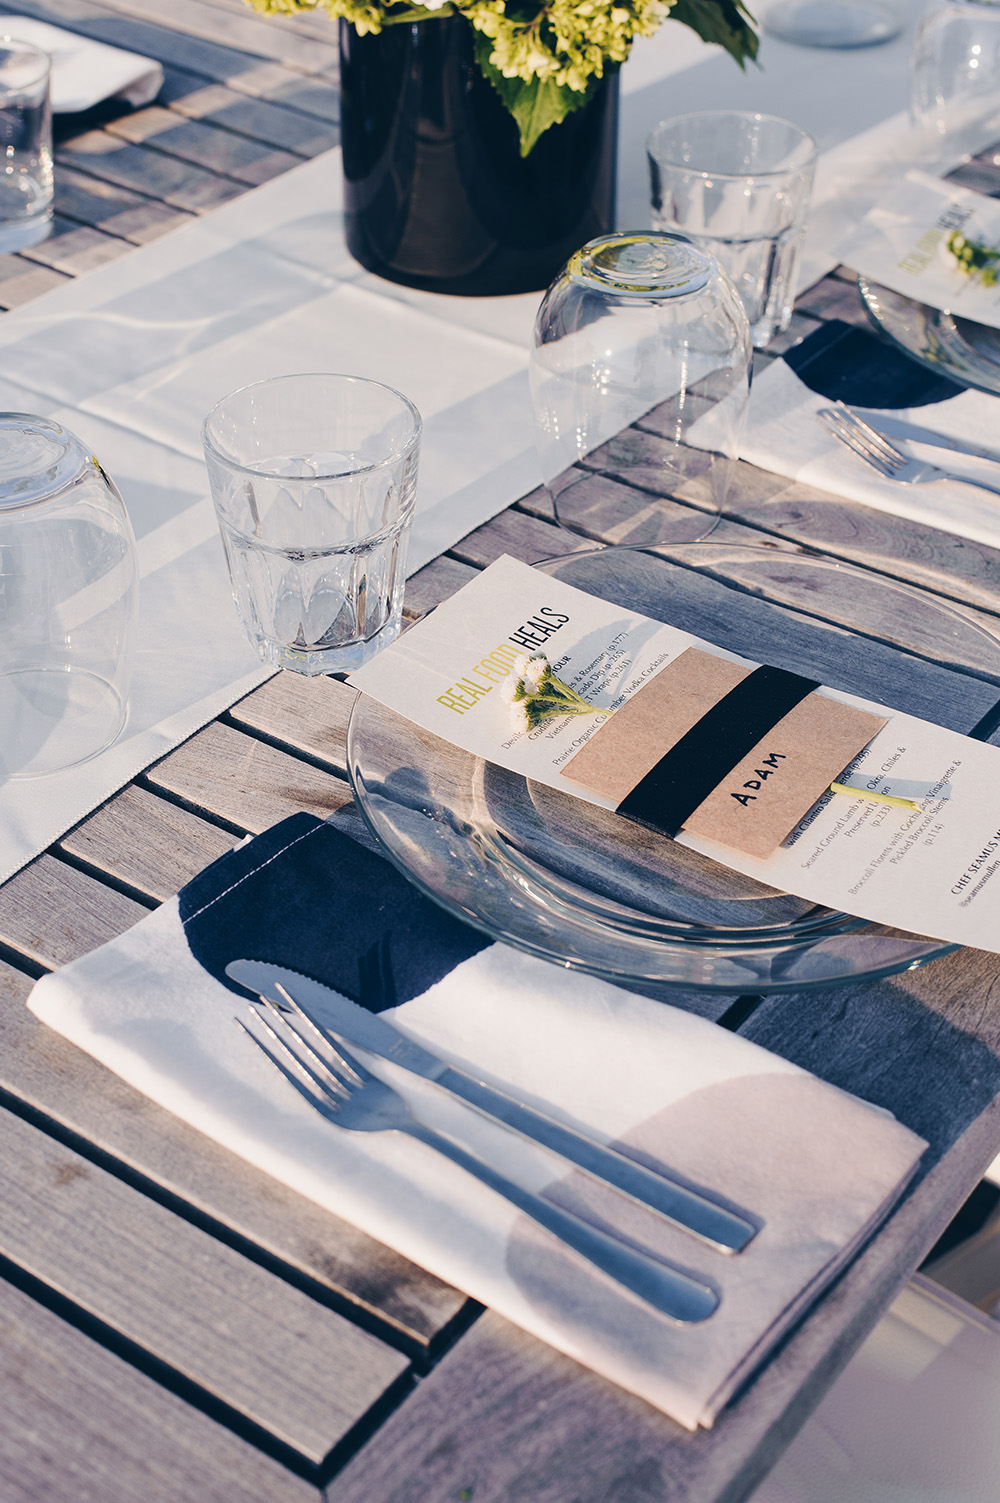 Rooftop dinner place setting with menu by Seamus Mullen